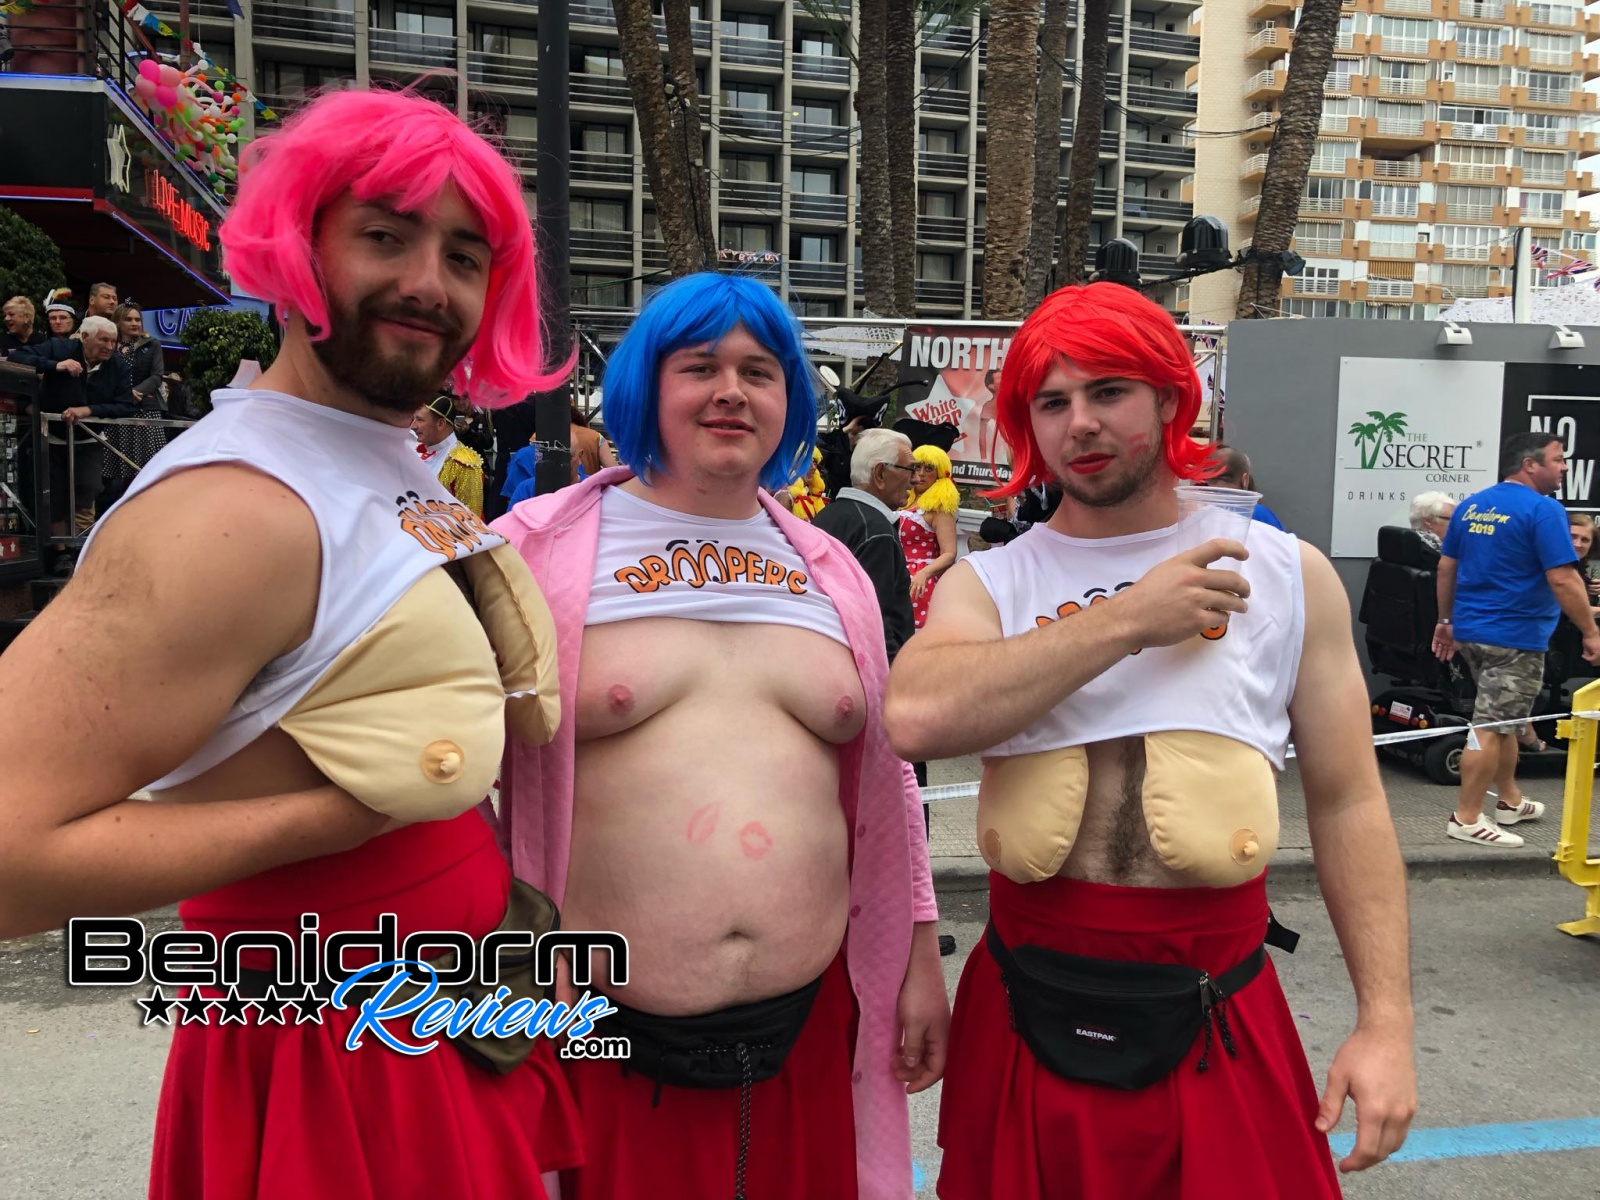 Benidorm-Fiestas-2019-Fancy-Dress-179